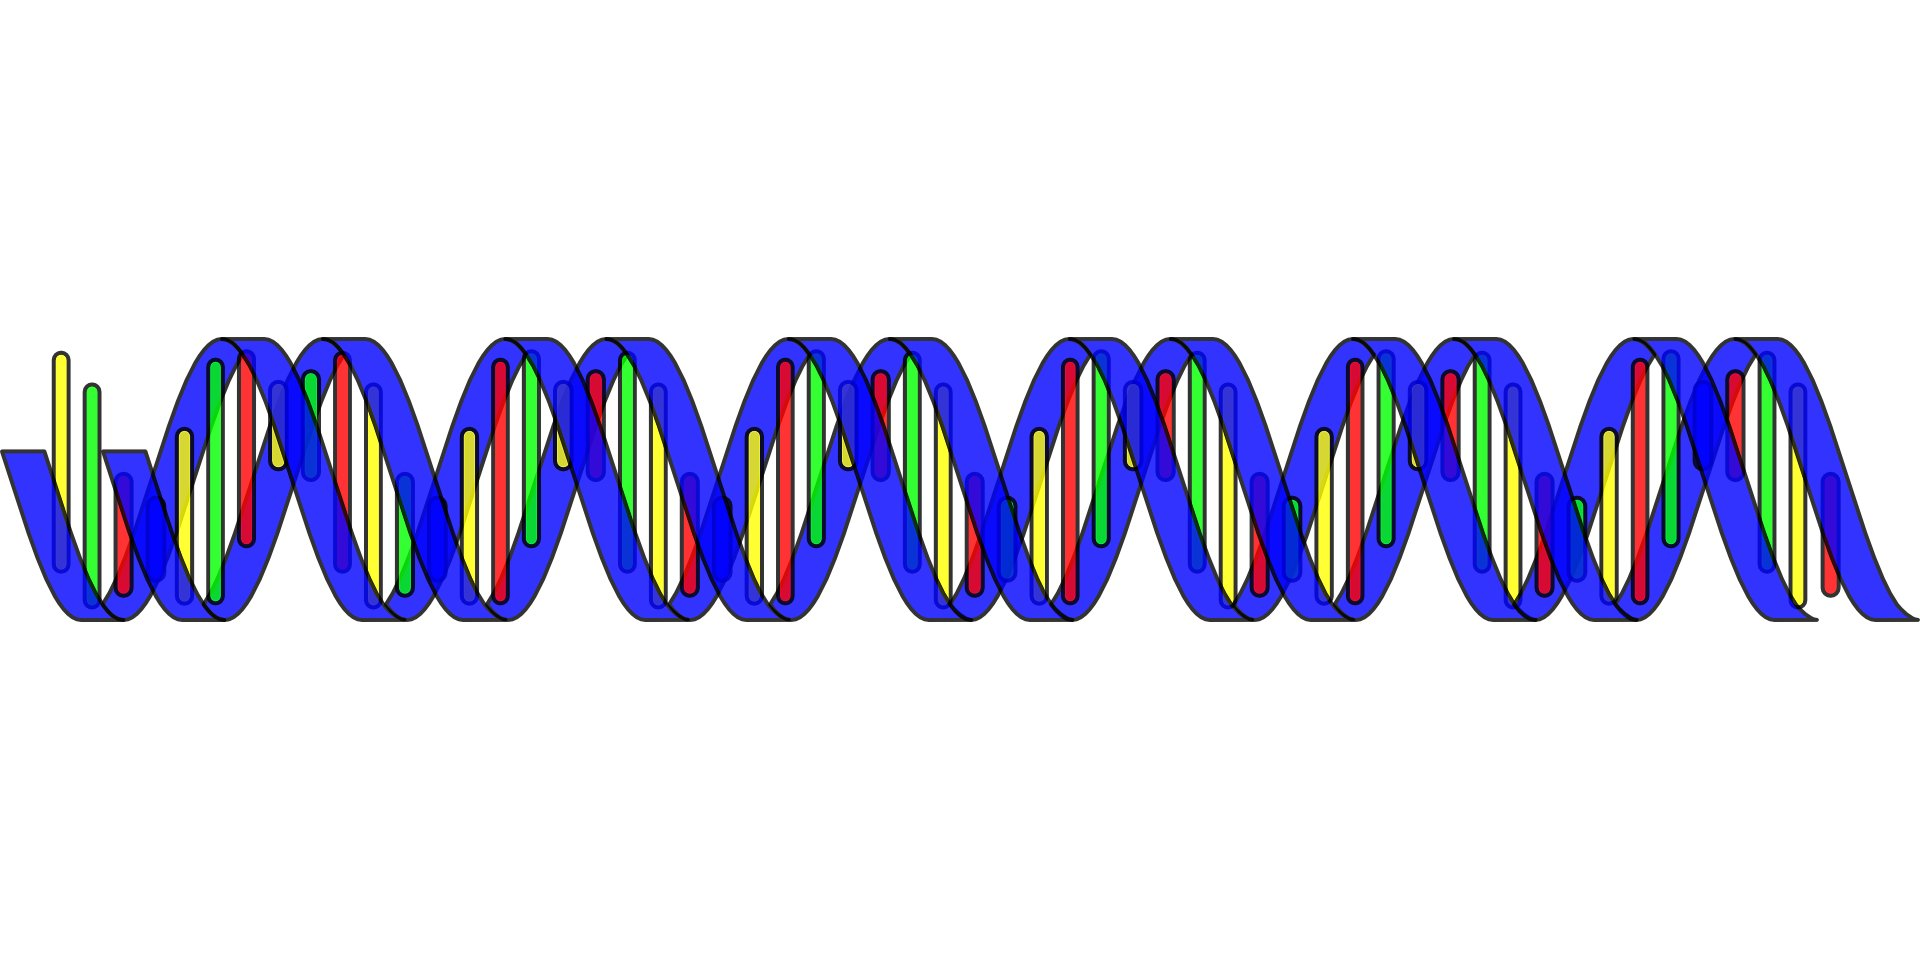 Cell-free DNA provides a dynamic window into health